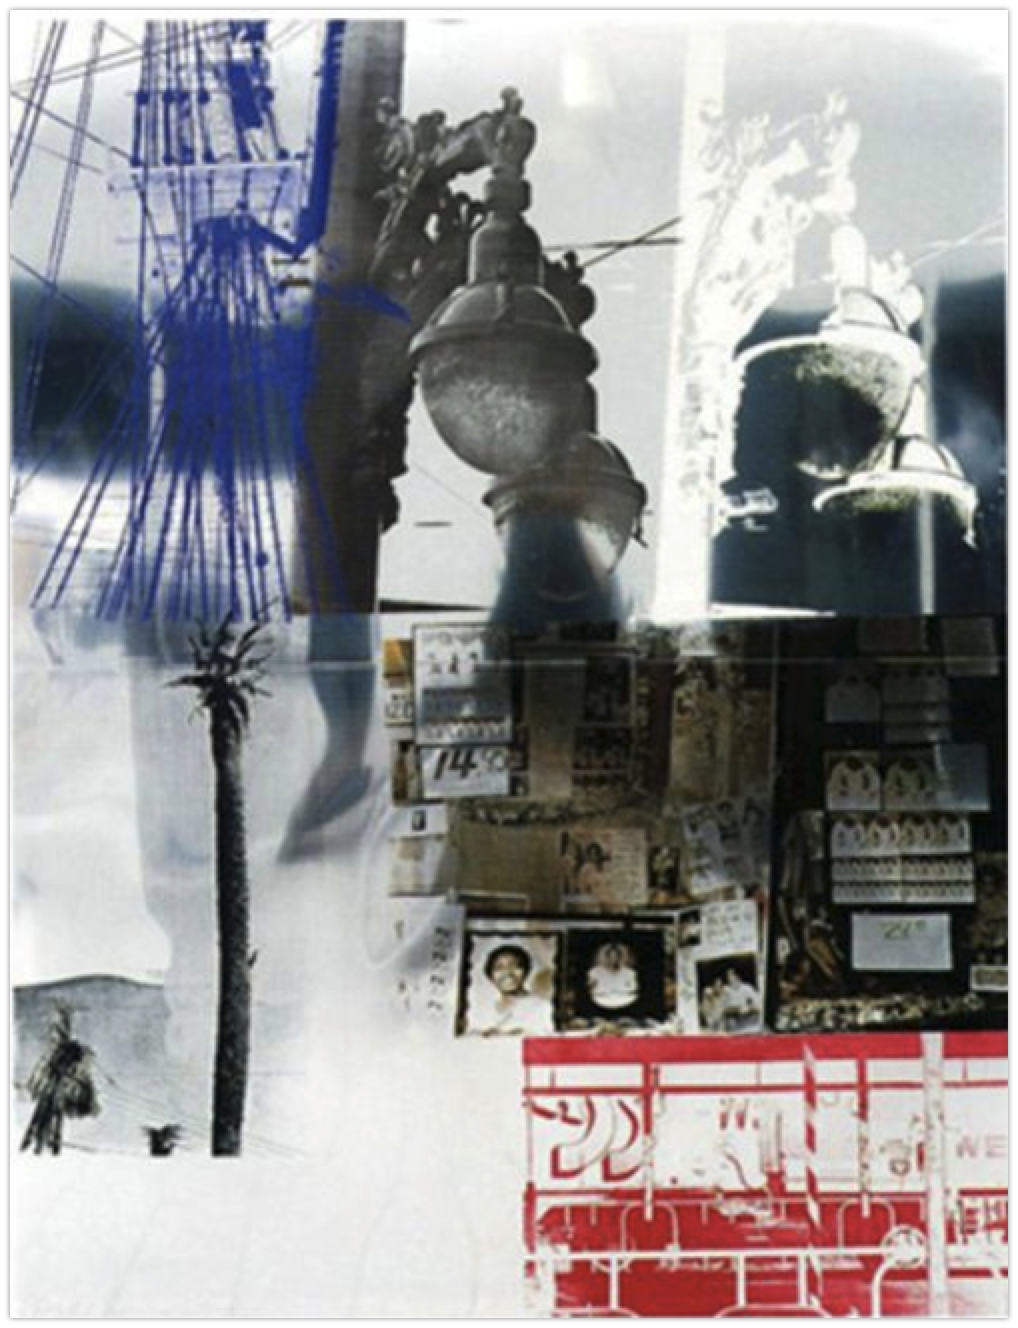 robert-rauschenberg-narcissusroci-usa-wax-fire-works-mixed-media